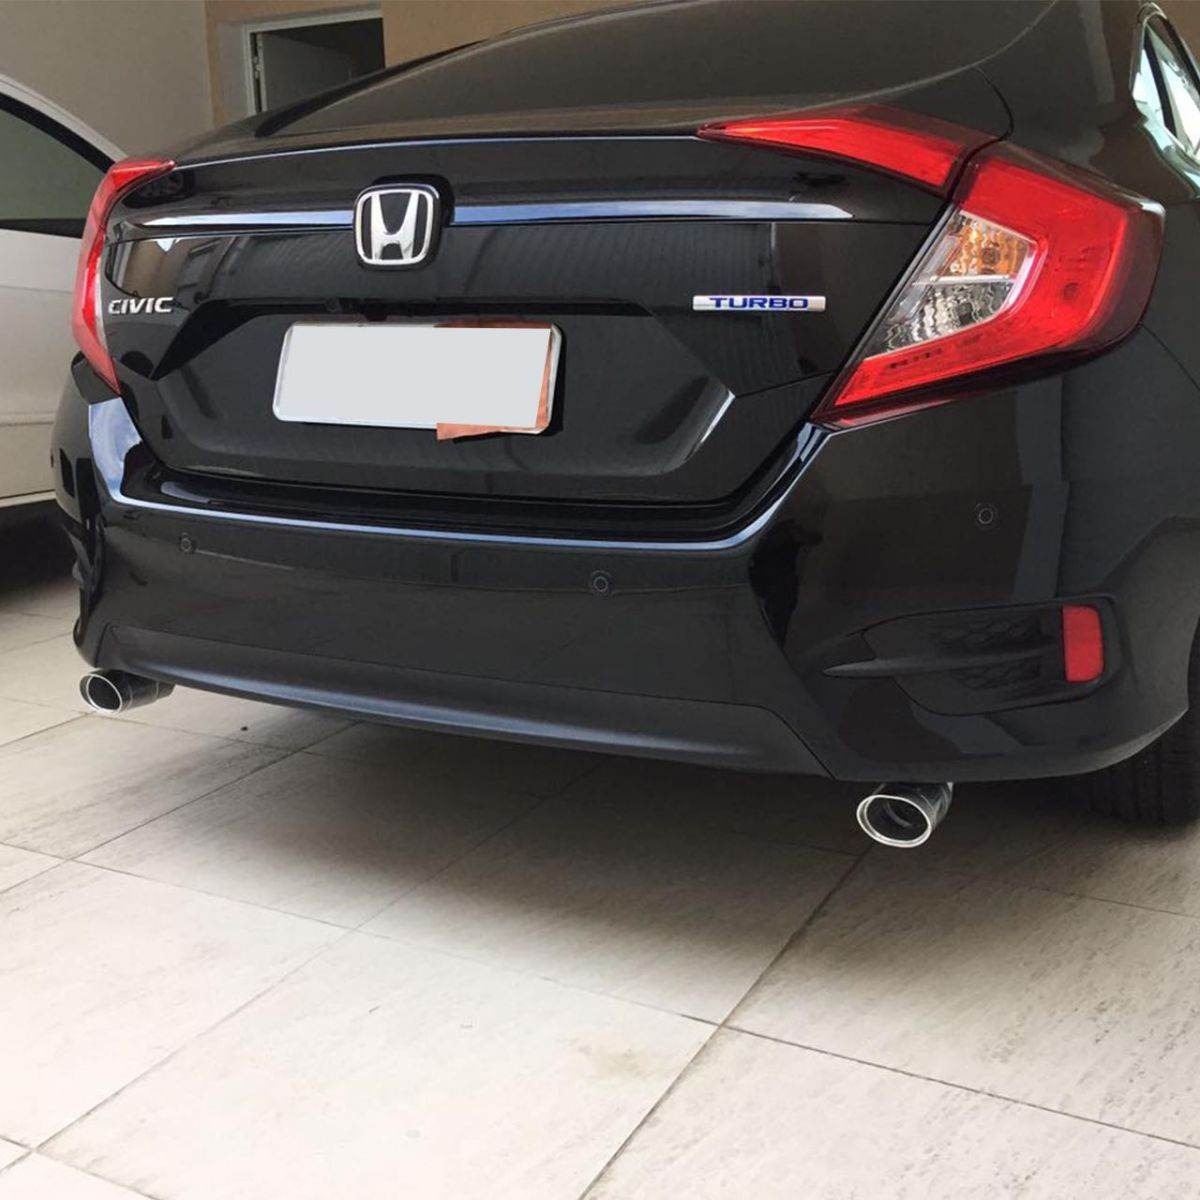 Ponteira Dupla Escape Elite Carbono Civic Geração 10 Turbo Touring